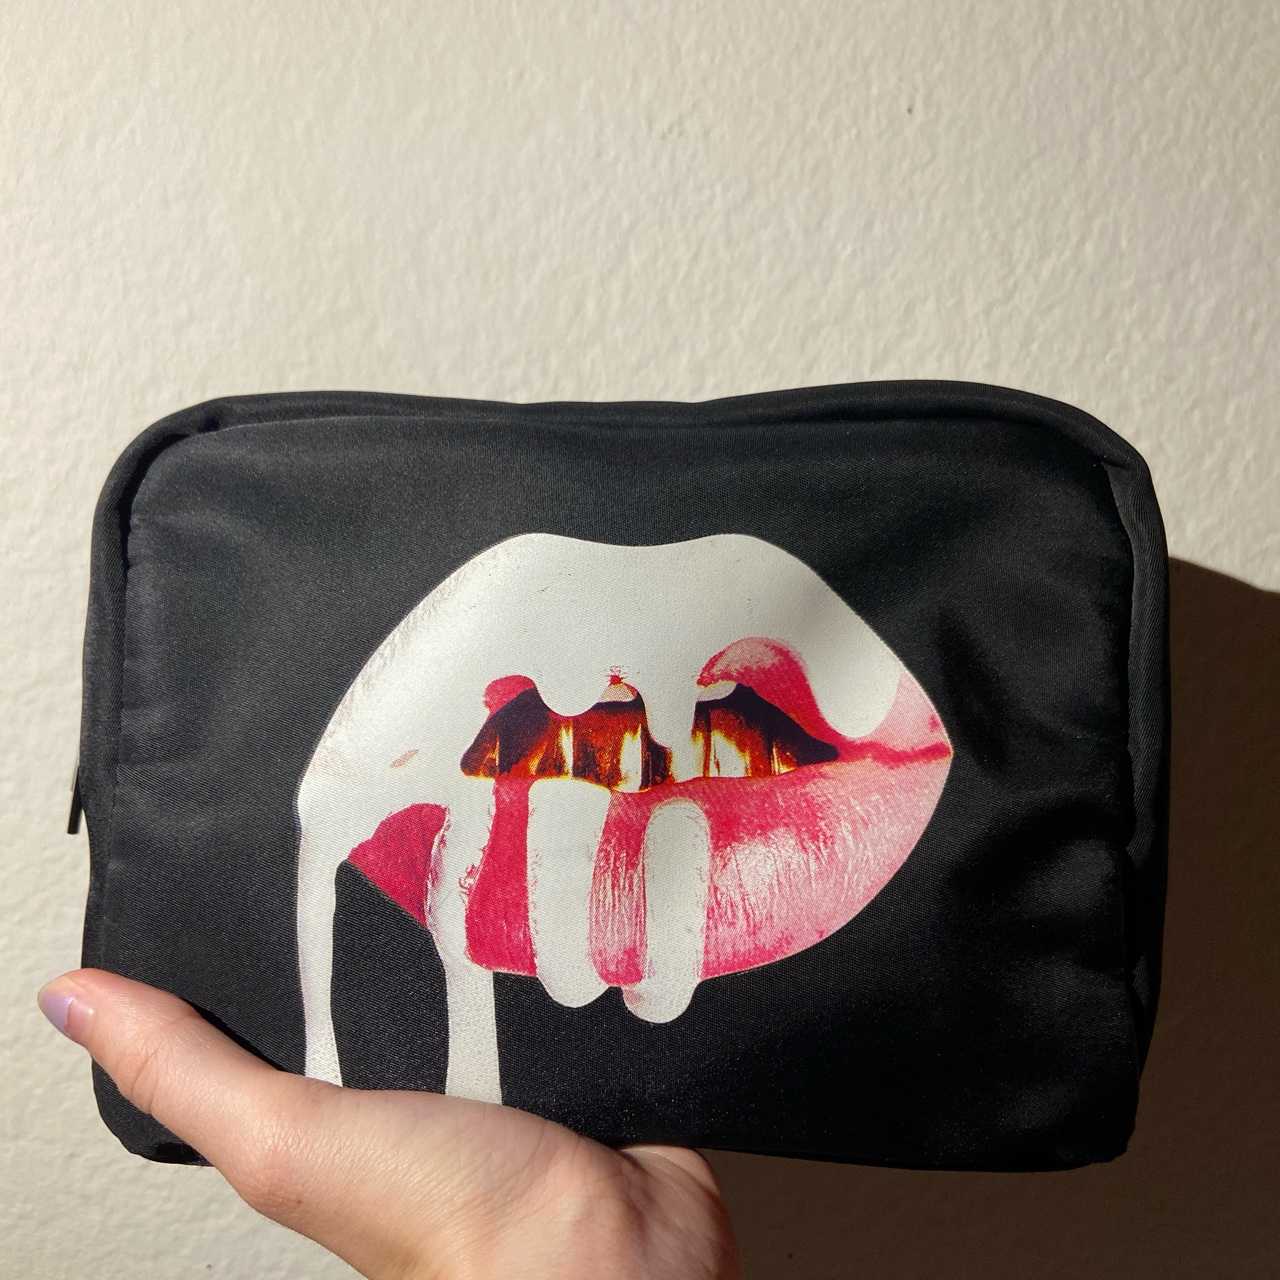 Kylie Jenner Kylie Cosmetics Makeup Bag No Flaws Depop